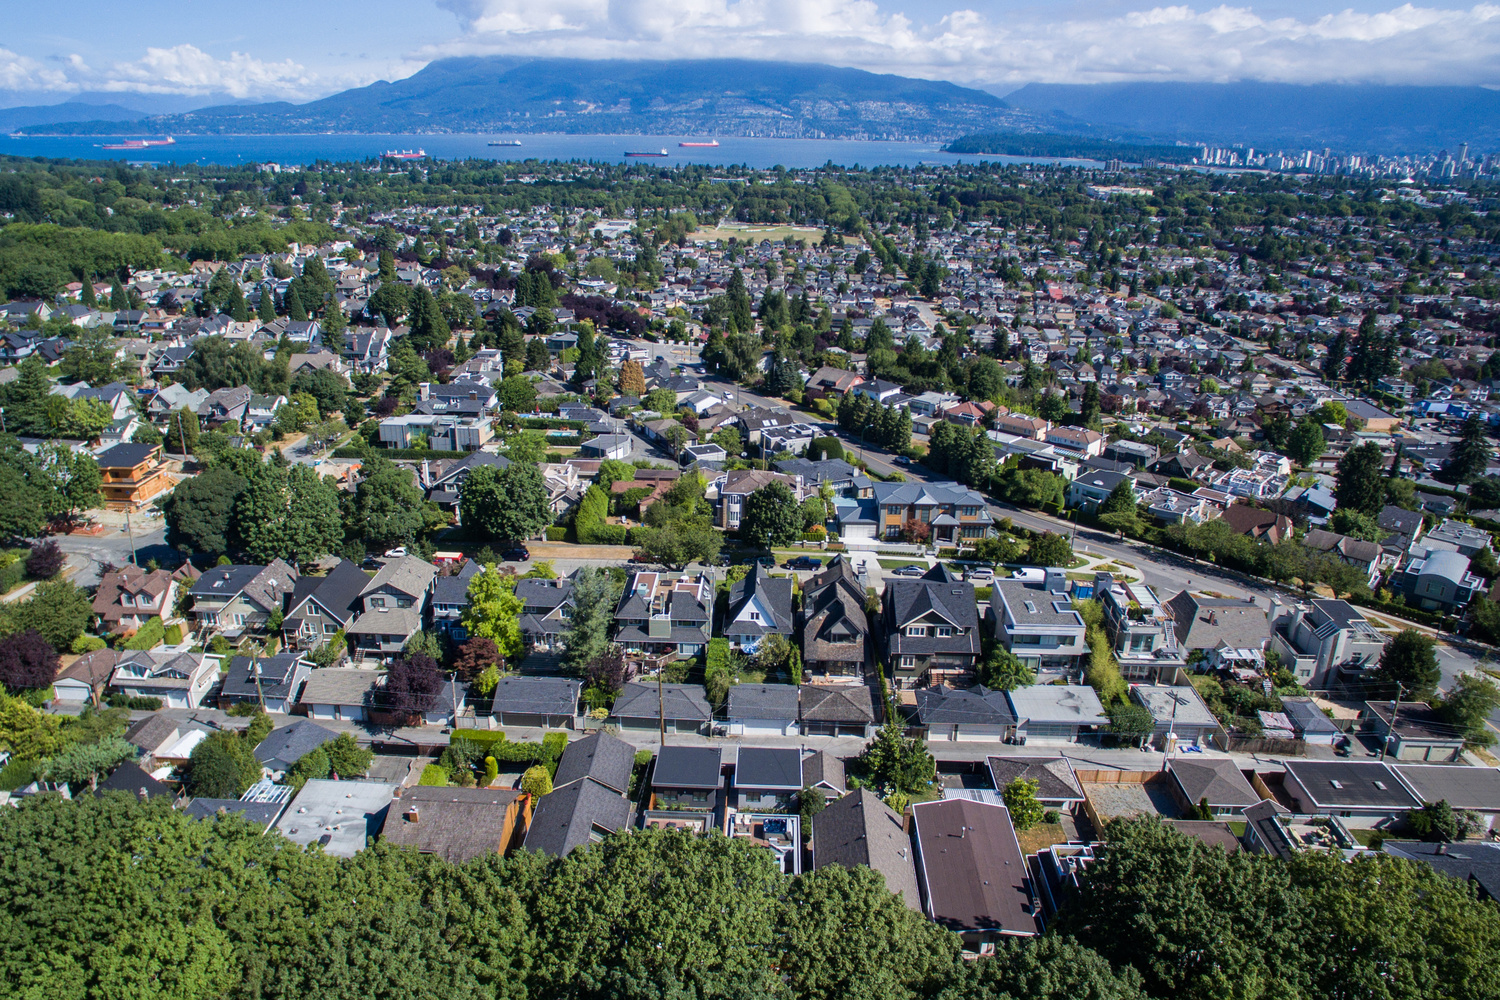 mackenzie hights aerial view houses a